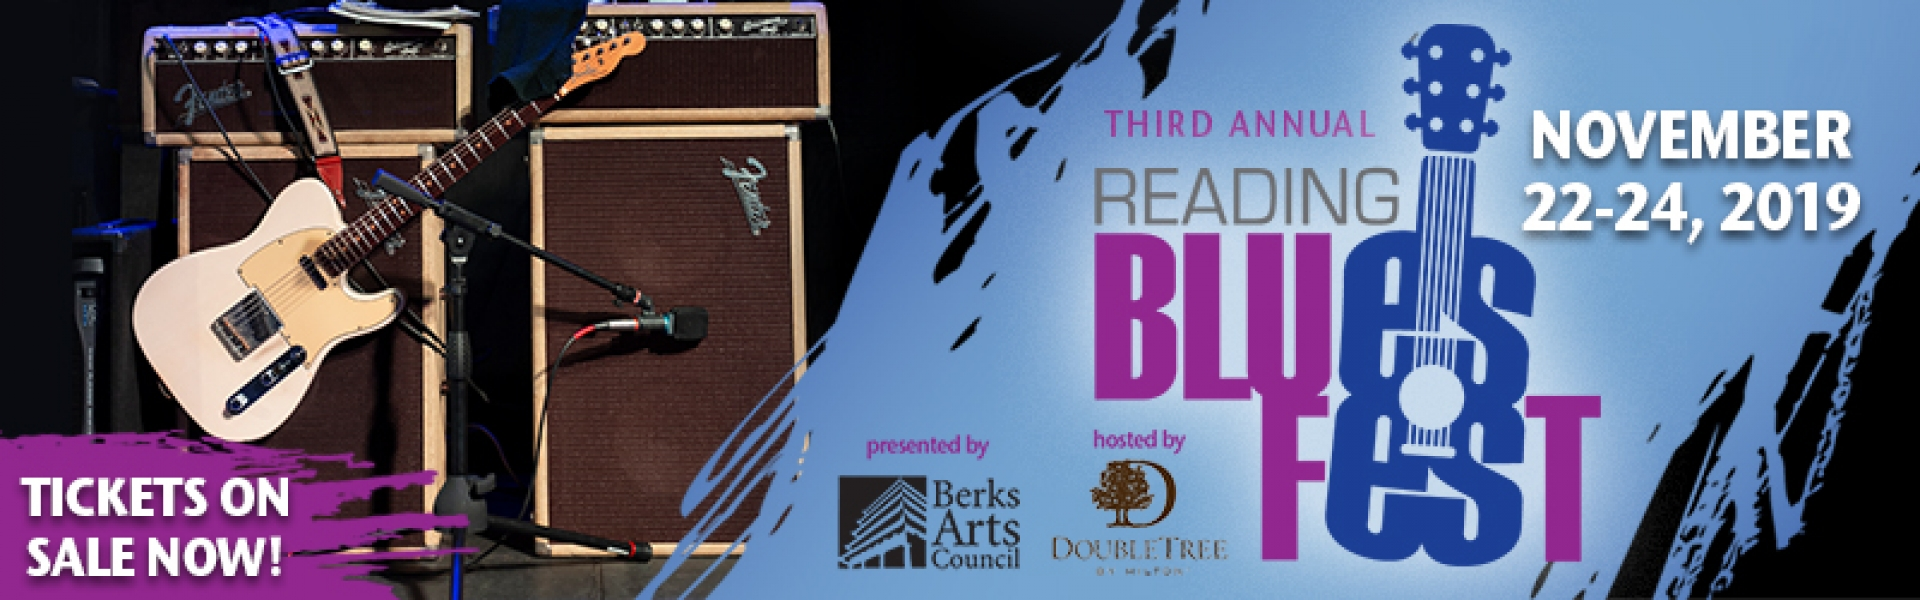 Reading Blues Fest advertisement November 22nd to November 24th